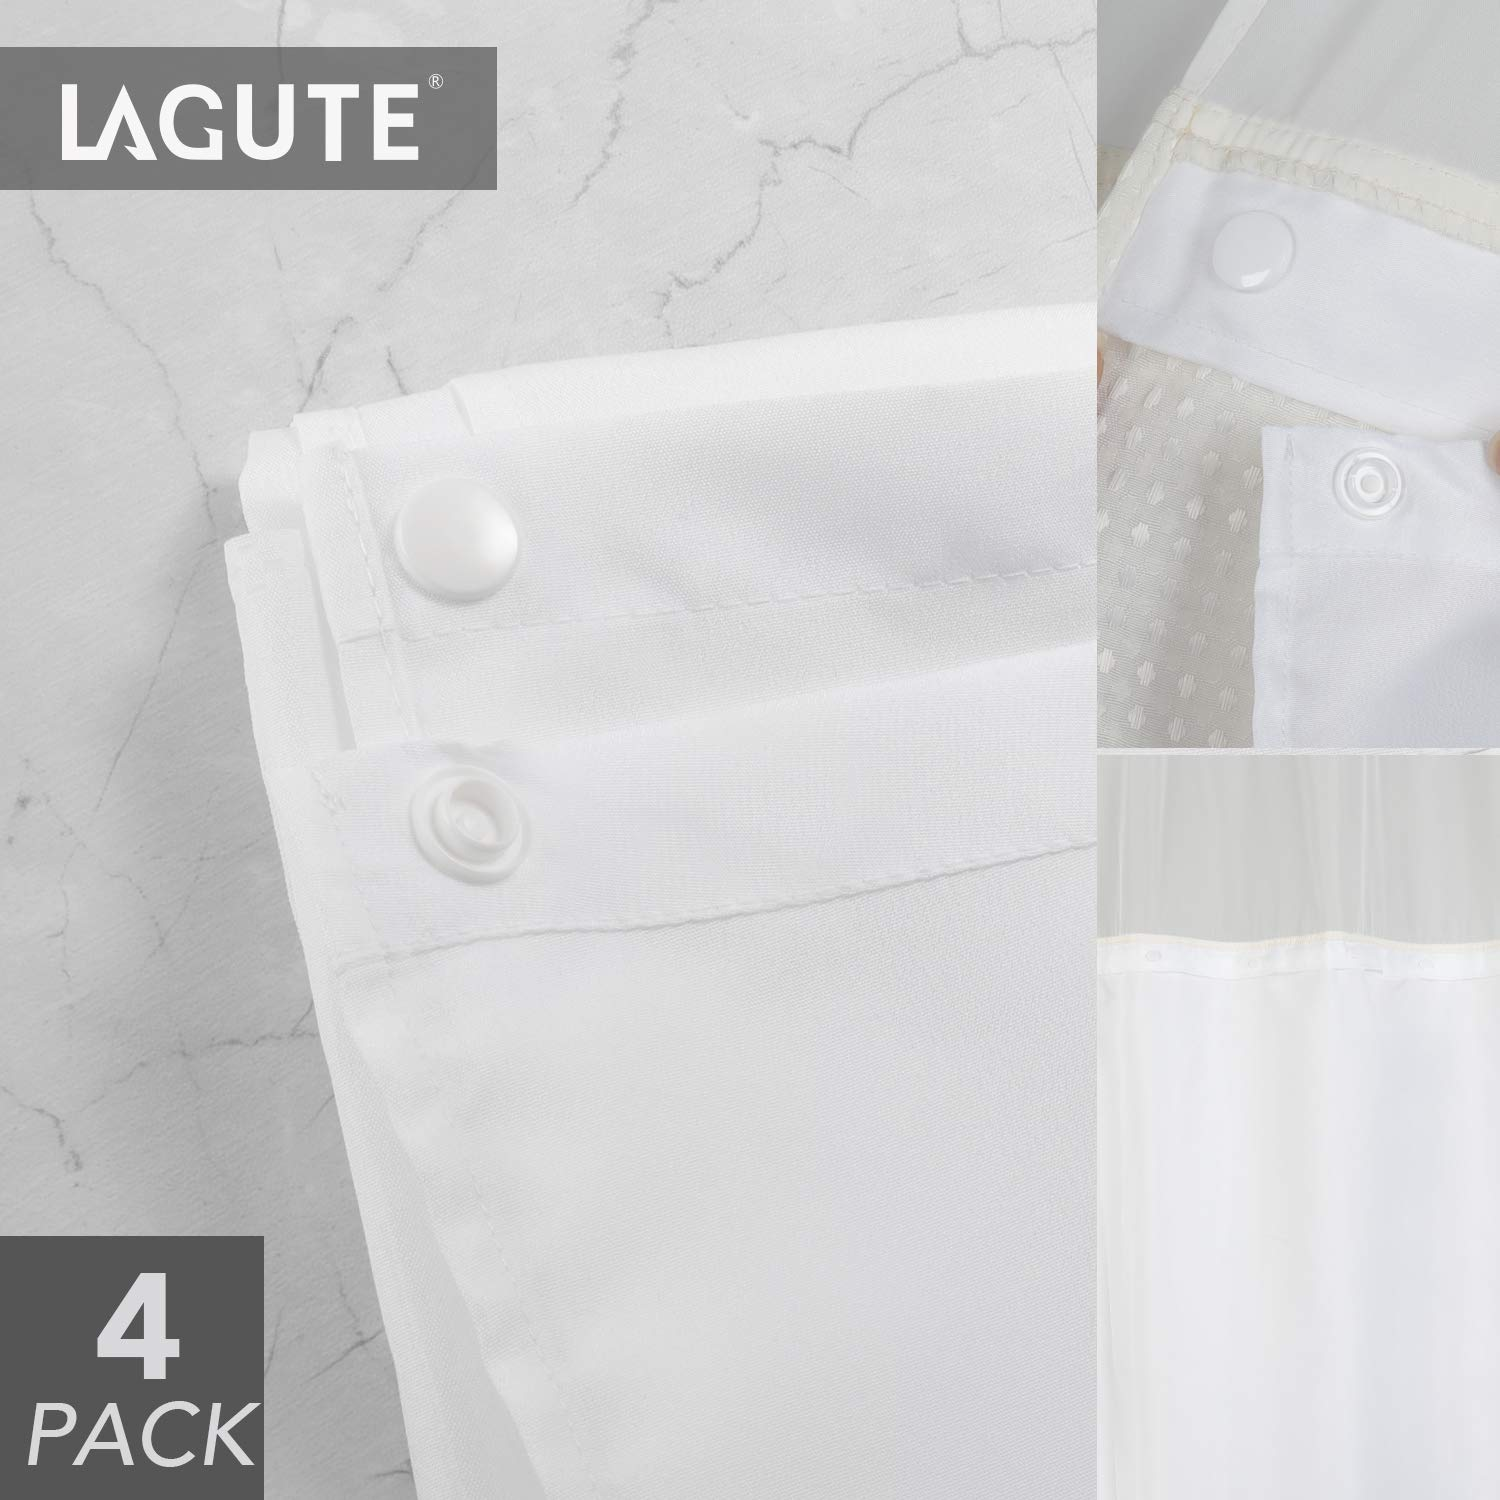 Lagute SnapHook Hookless Shower Curtain Replacement Snap-in Liner, Wipe Clean Machine Washable, Quick-Drying, No Chemical Odors, Polyester (4 Pack)